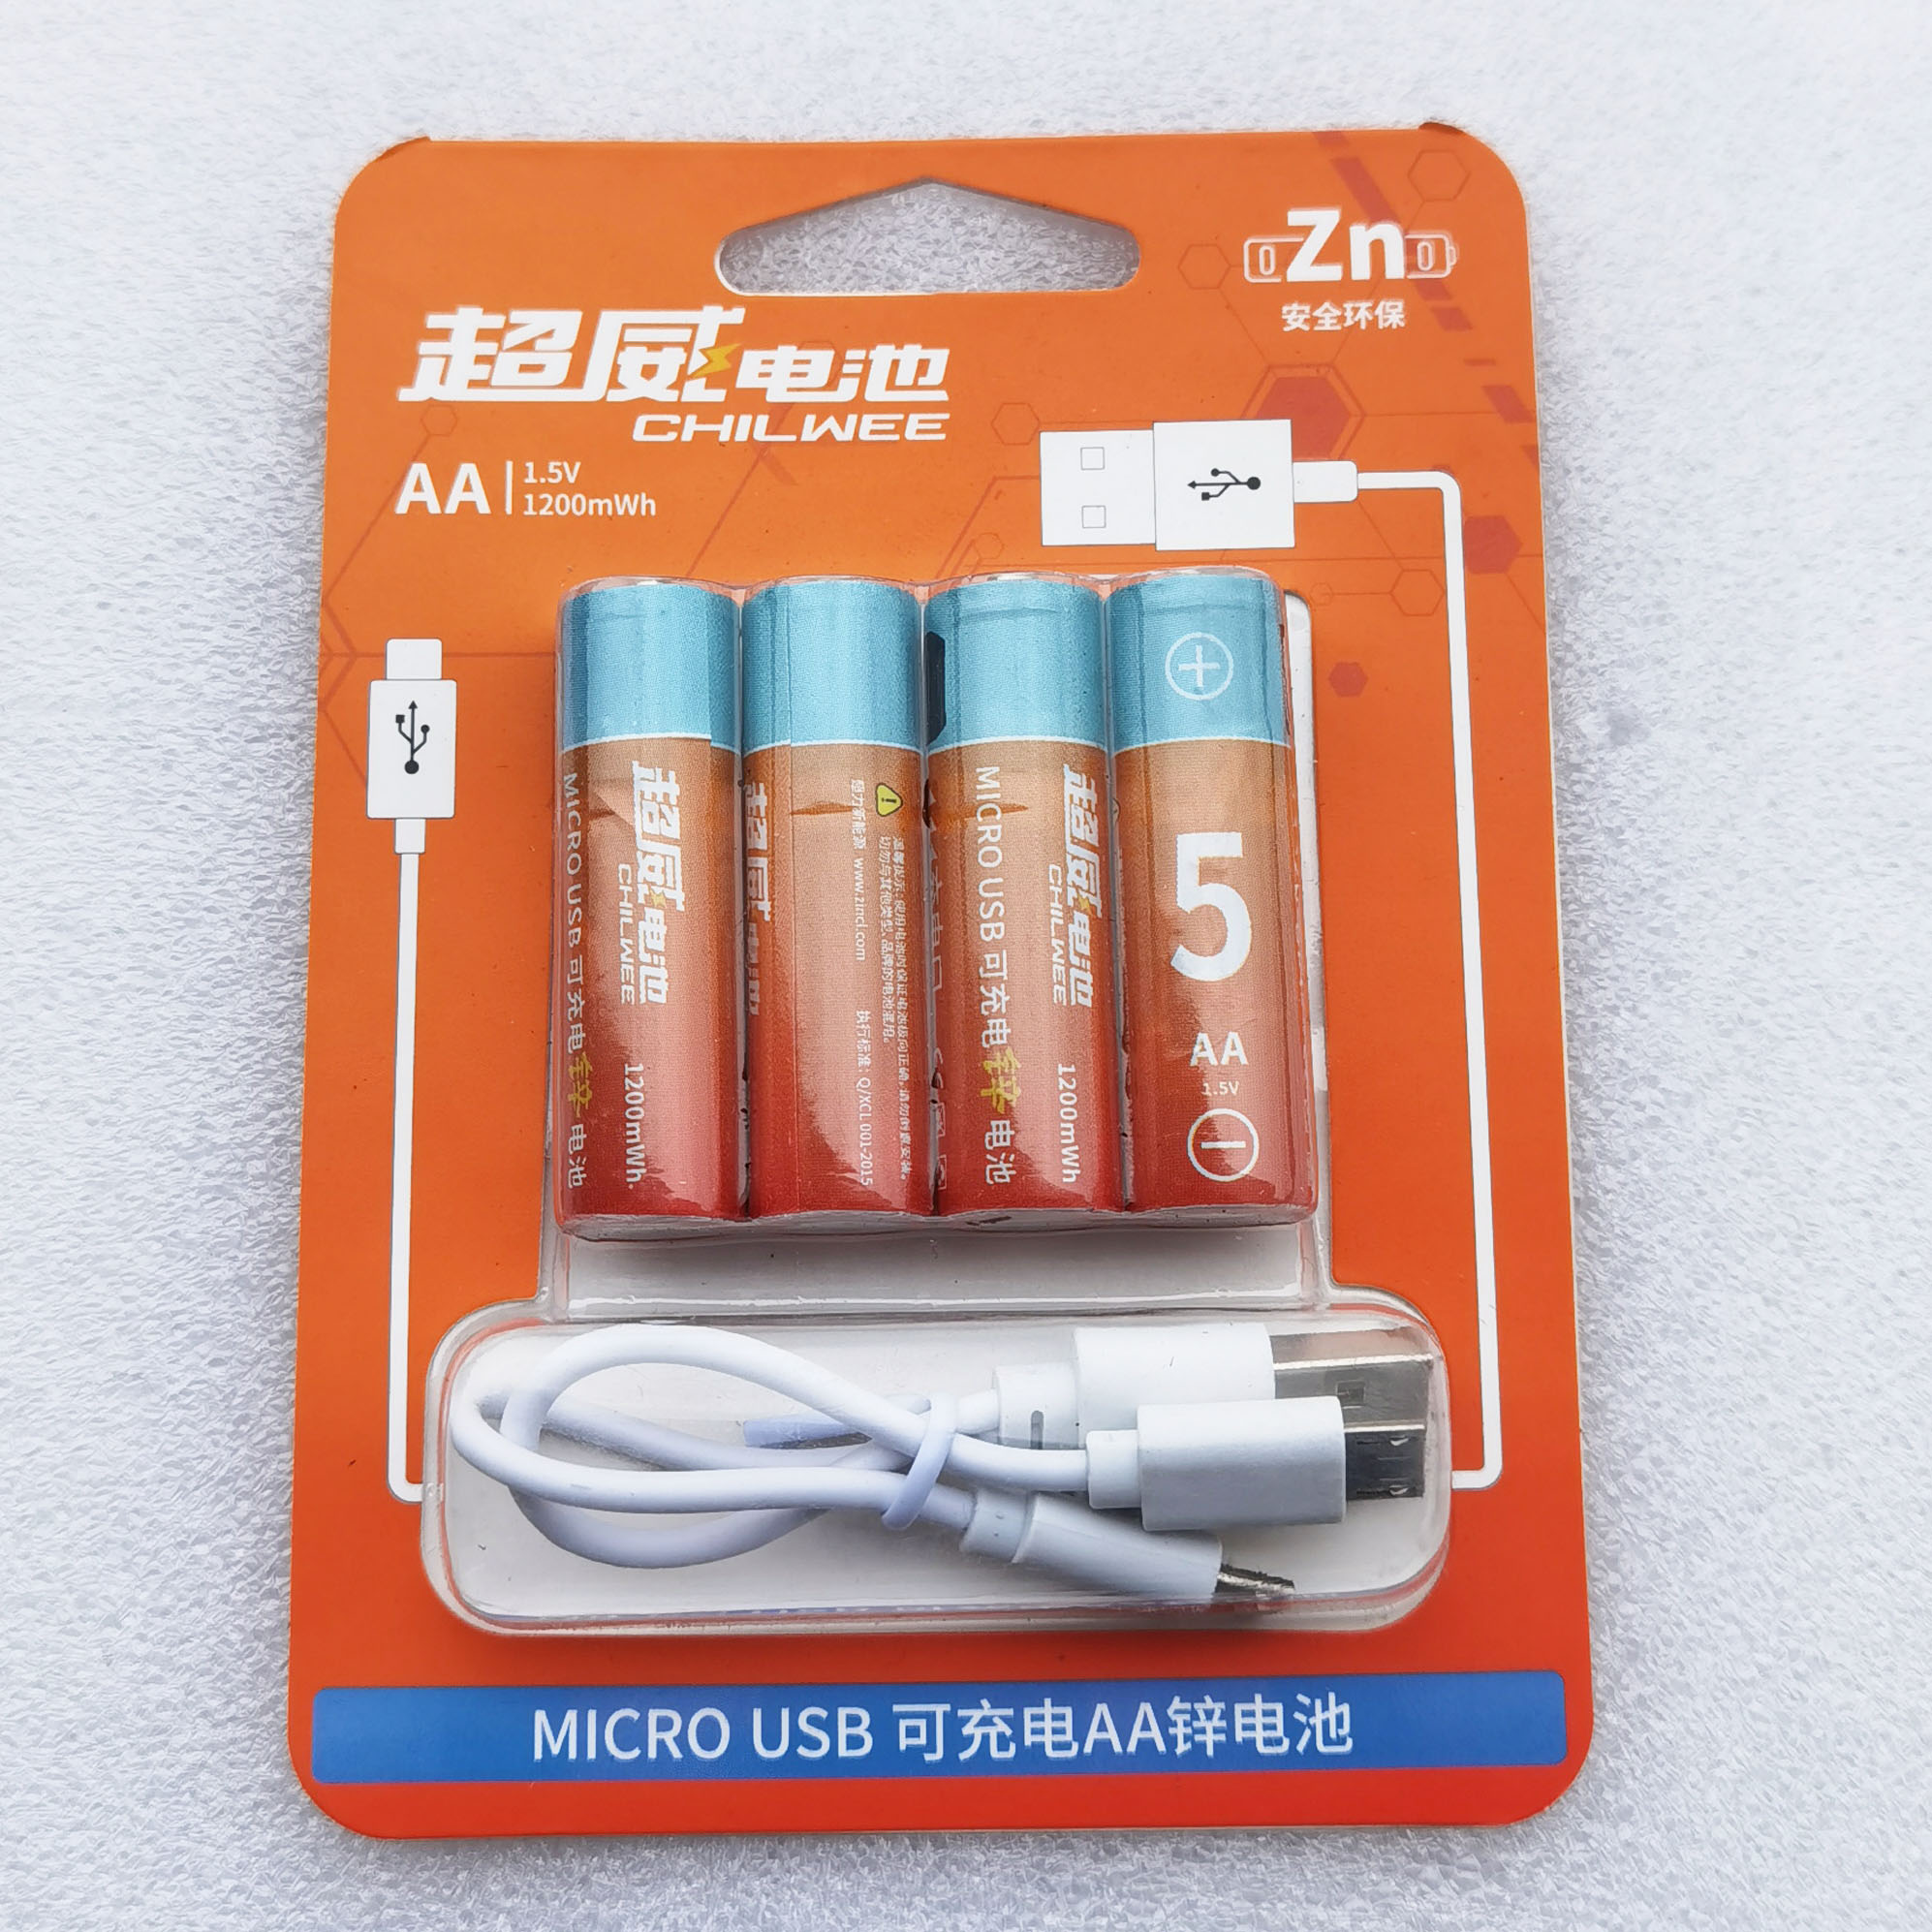 4PCS 1.5V <font><b>AA</b></font> rechargeable <font><b>Ni</b></font>-Zn <font><b>battery</b></font> 1200mwh USB NiZn cell for camera toys shaver toothbrush replace <font><b>1.2v</b></font> <font><b>ni</b></font>-<font><b>mh</b></font> <font><b>ni</b></font>-cd cells image